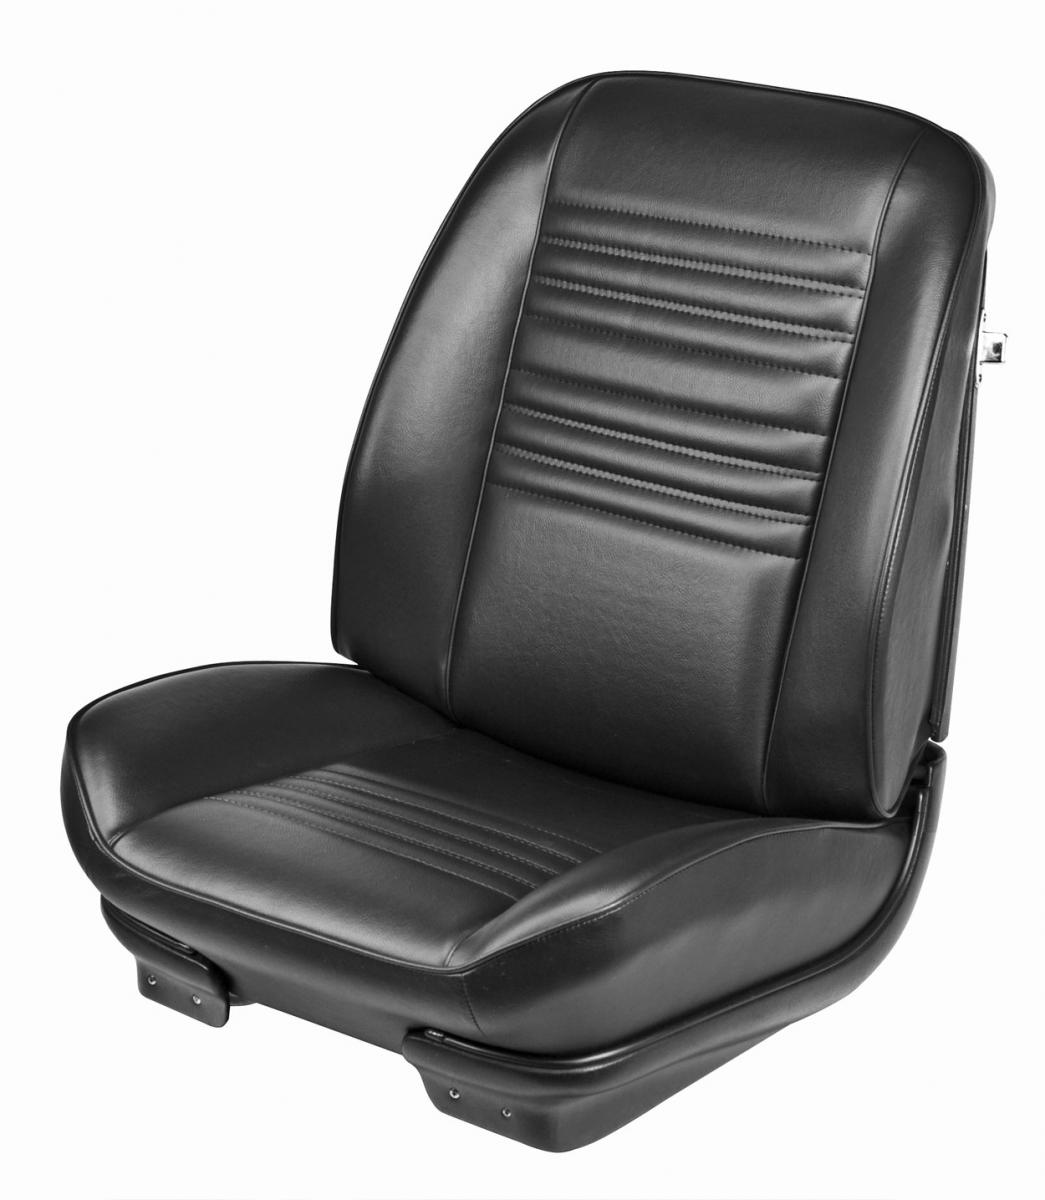 Tmi Chevelle Sport Seat Foams And Covers Exact Stock